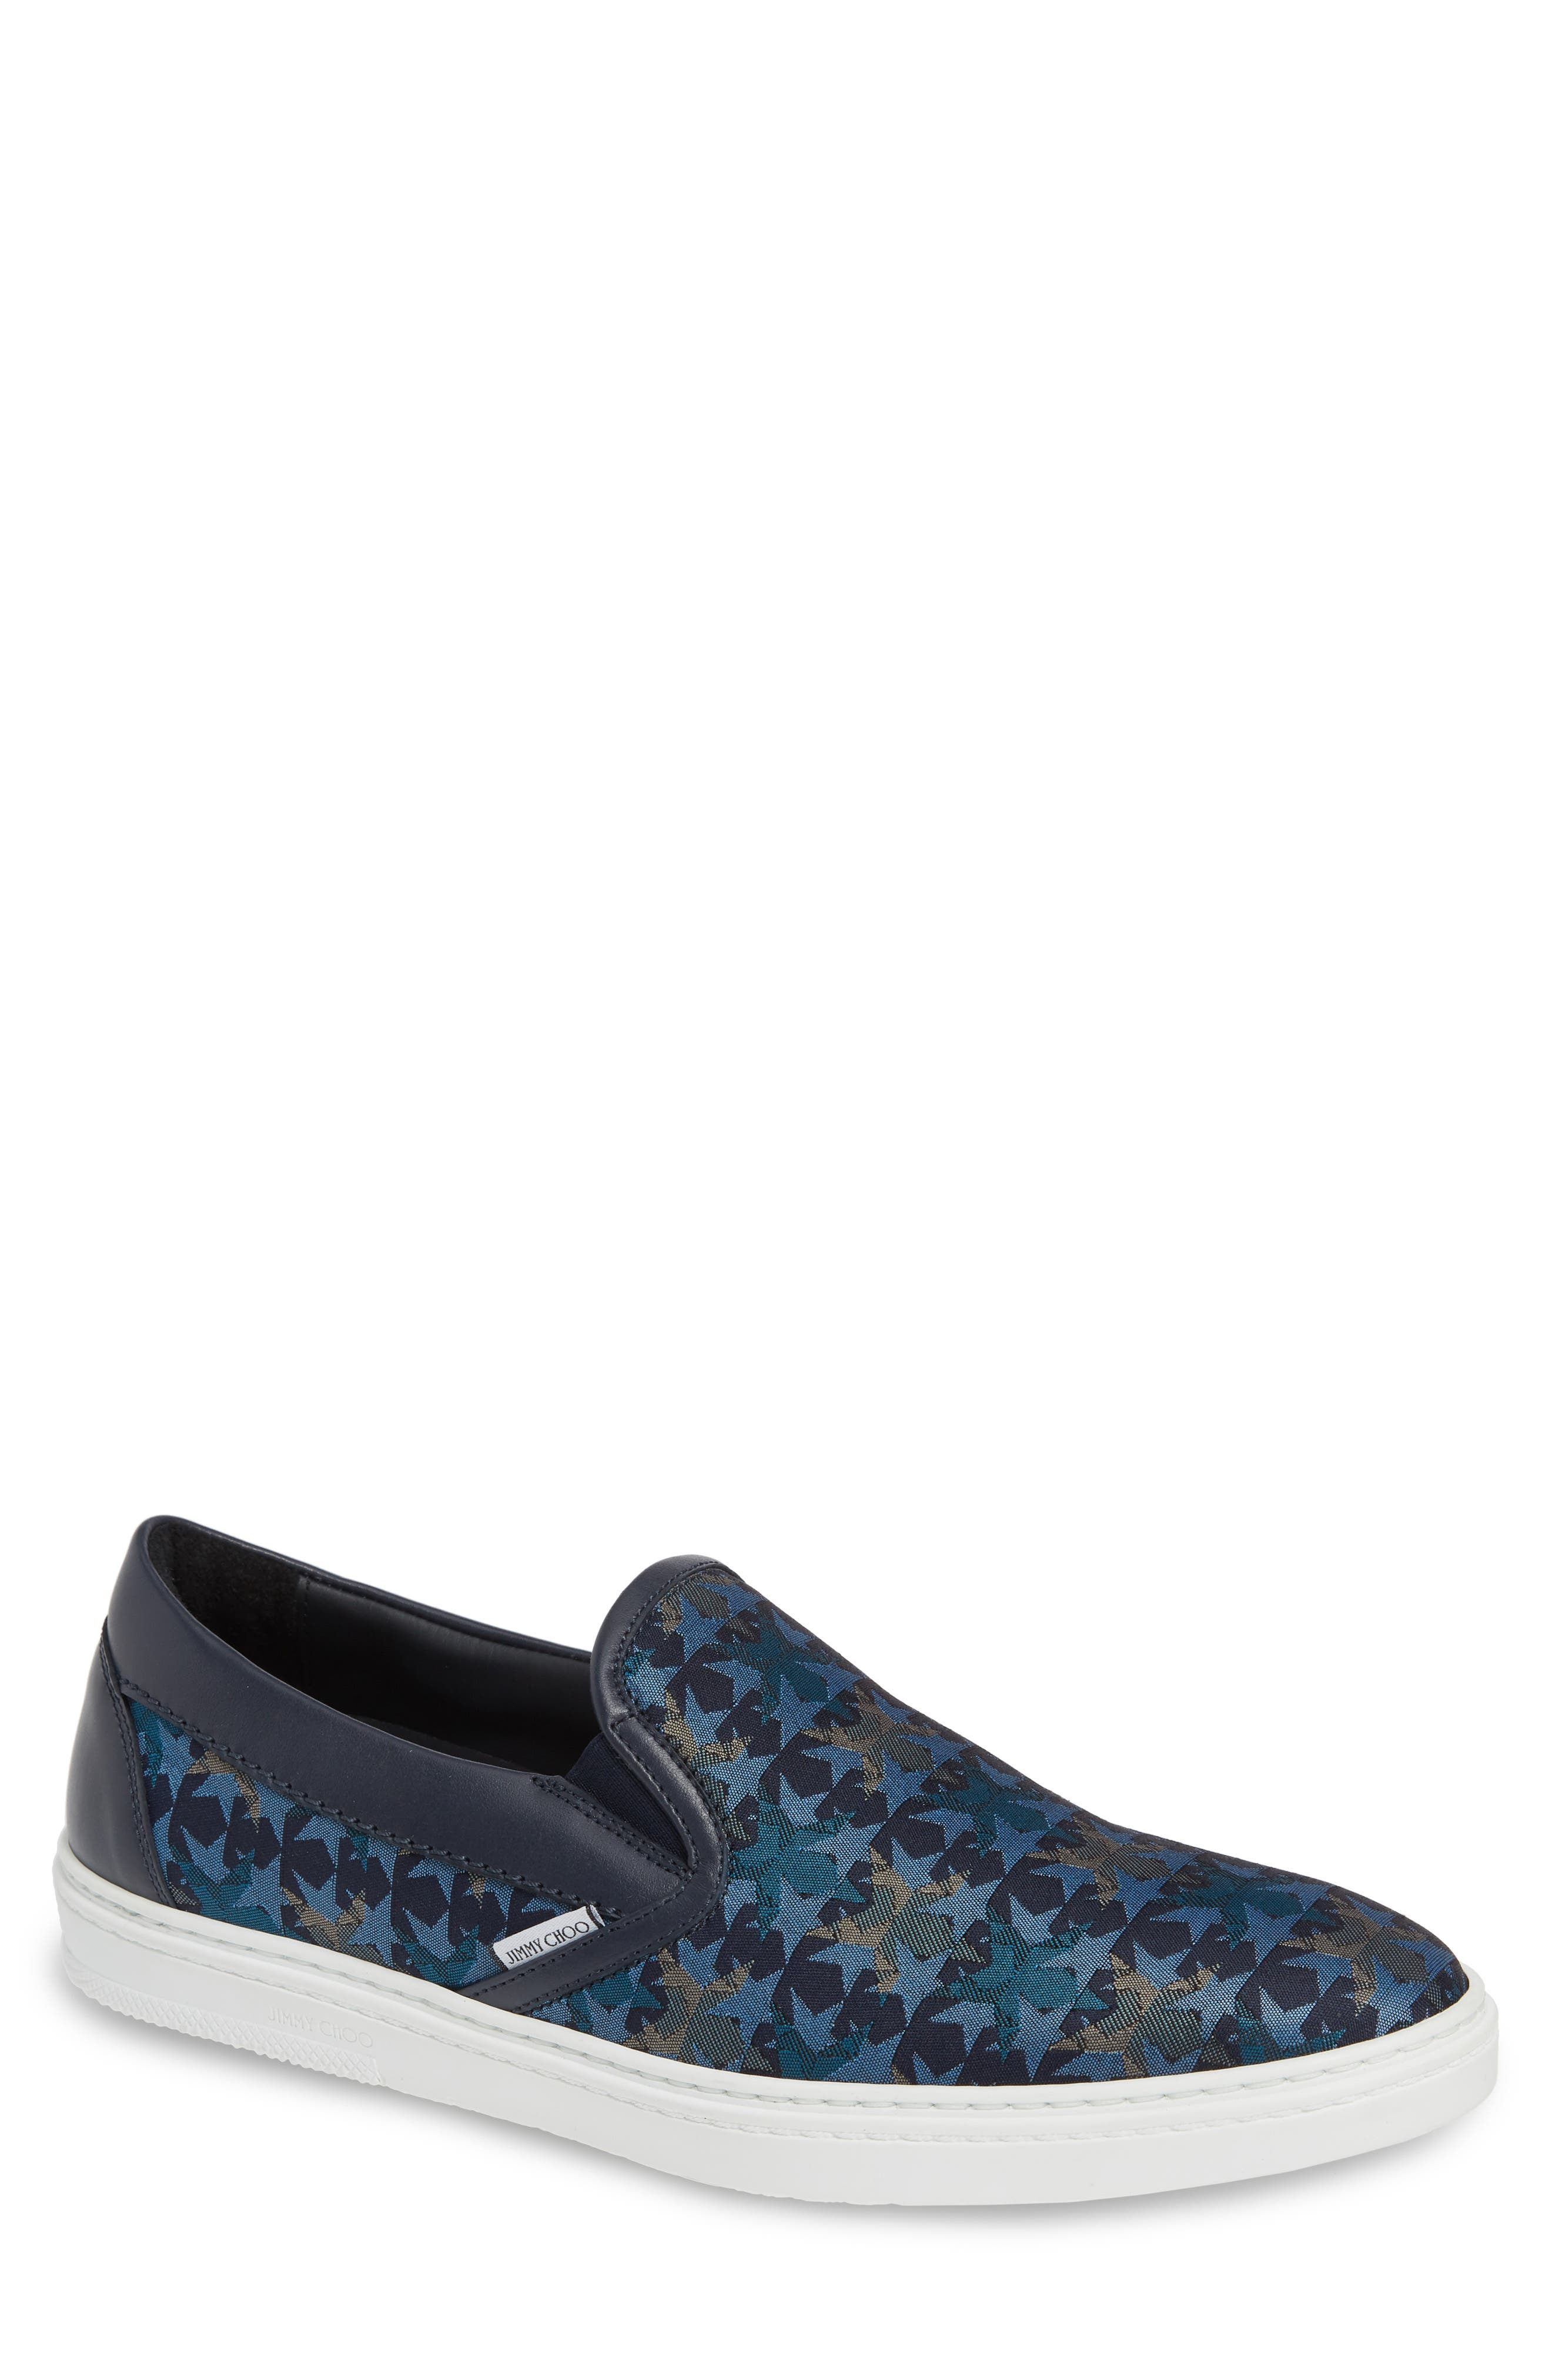 JIMMY CHOO, Grove Slip-On, Main thumbnail 1, color, 420